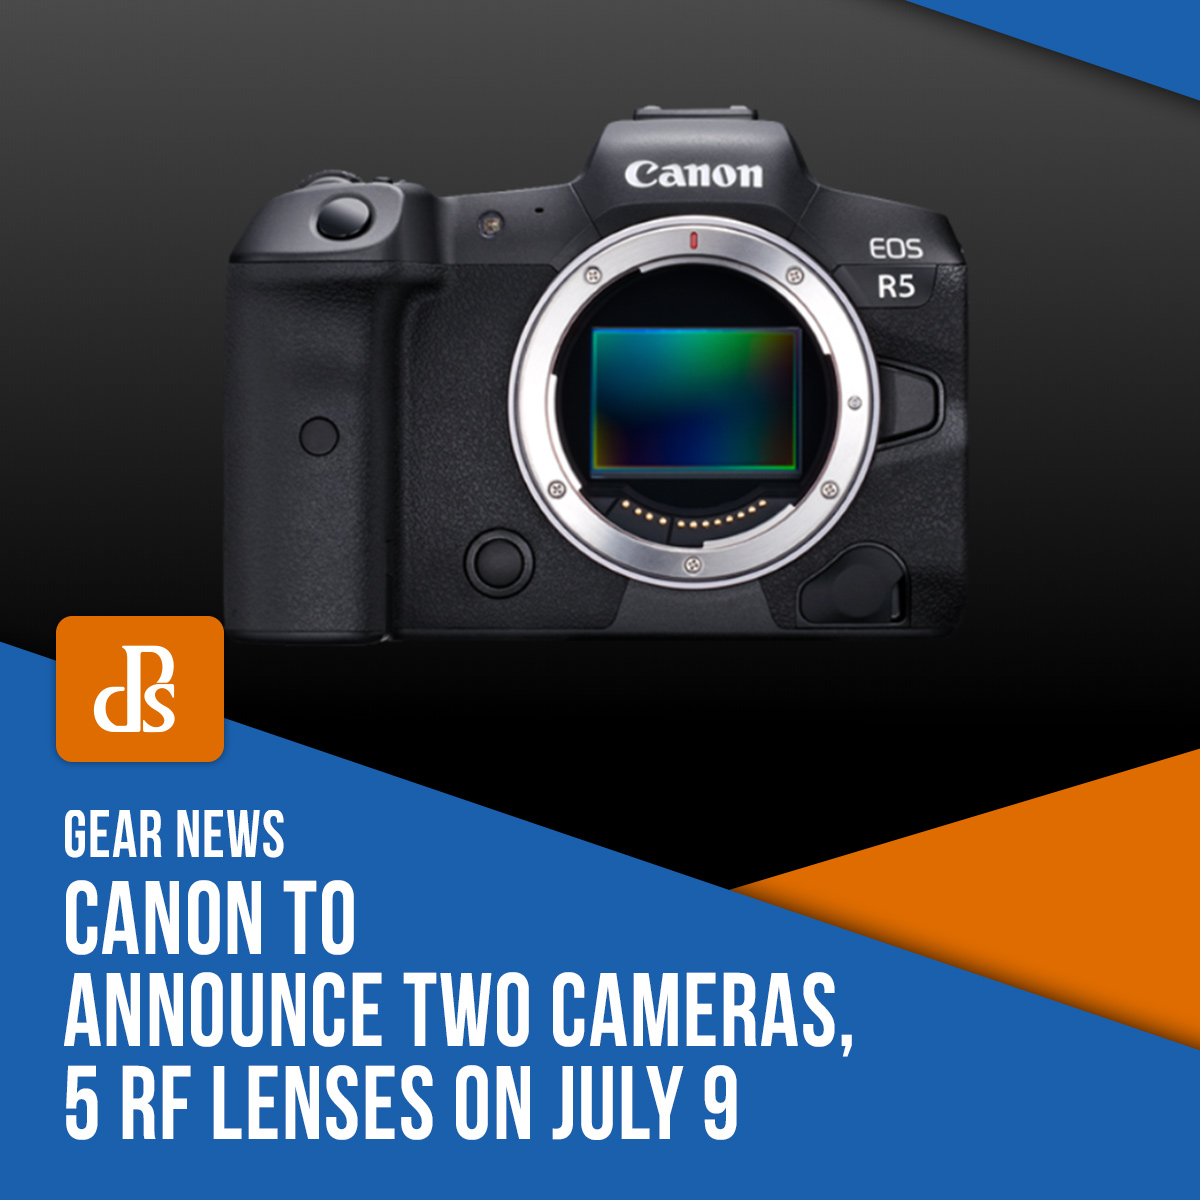 canon 2 announce 2 cameras july 9 - gear news